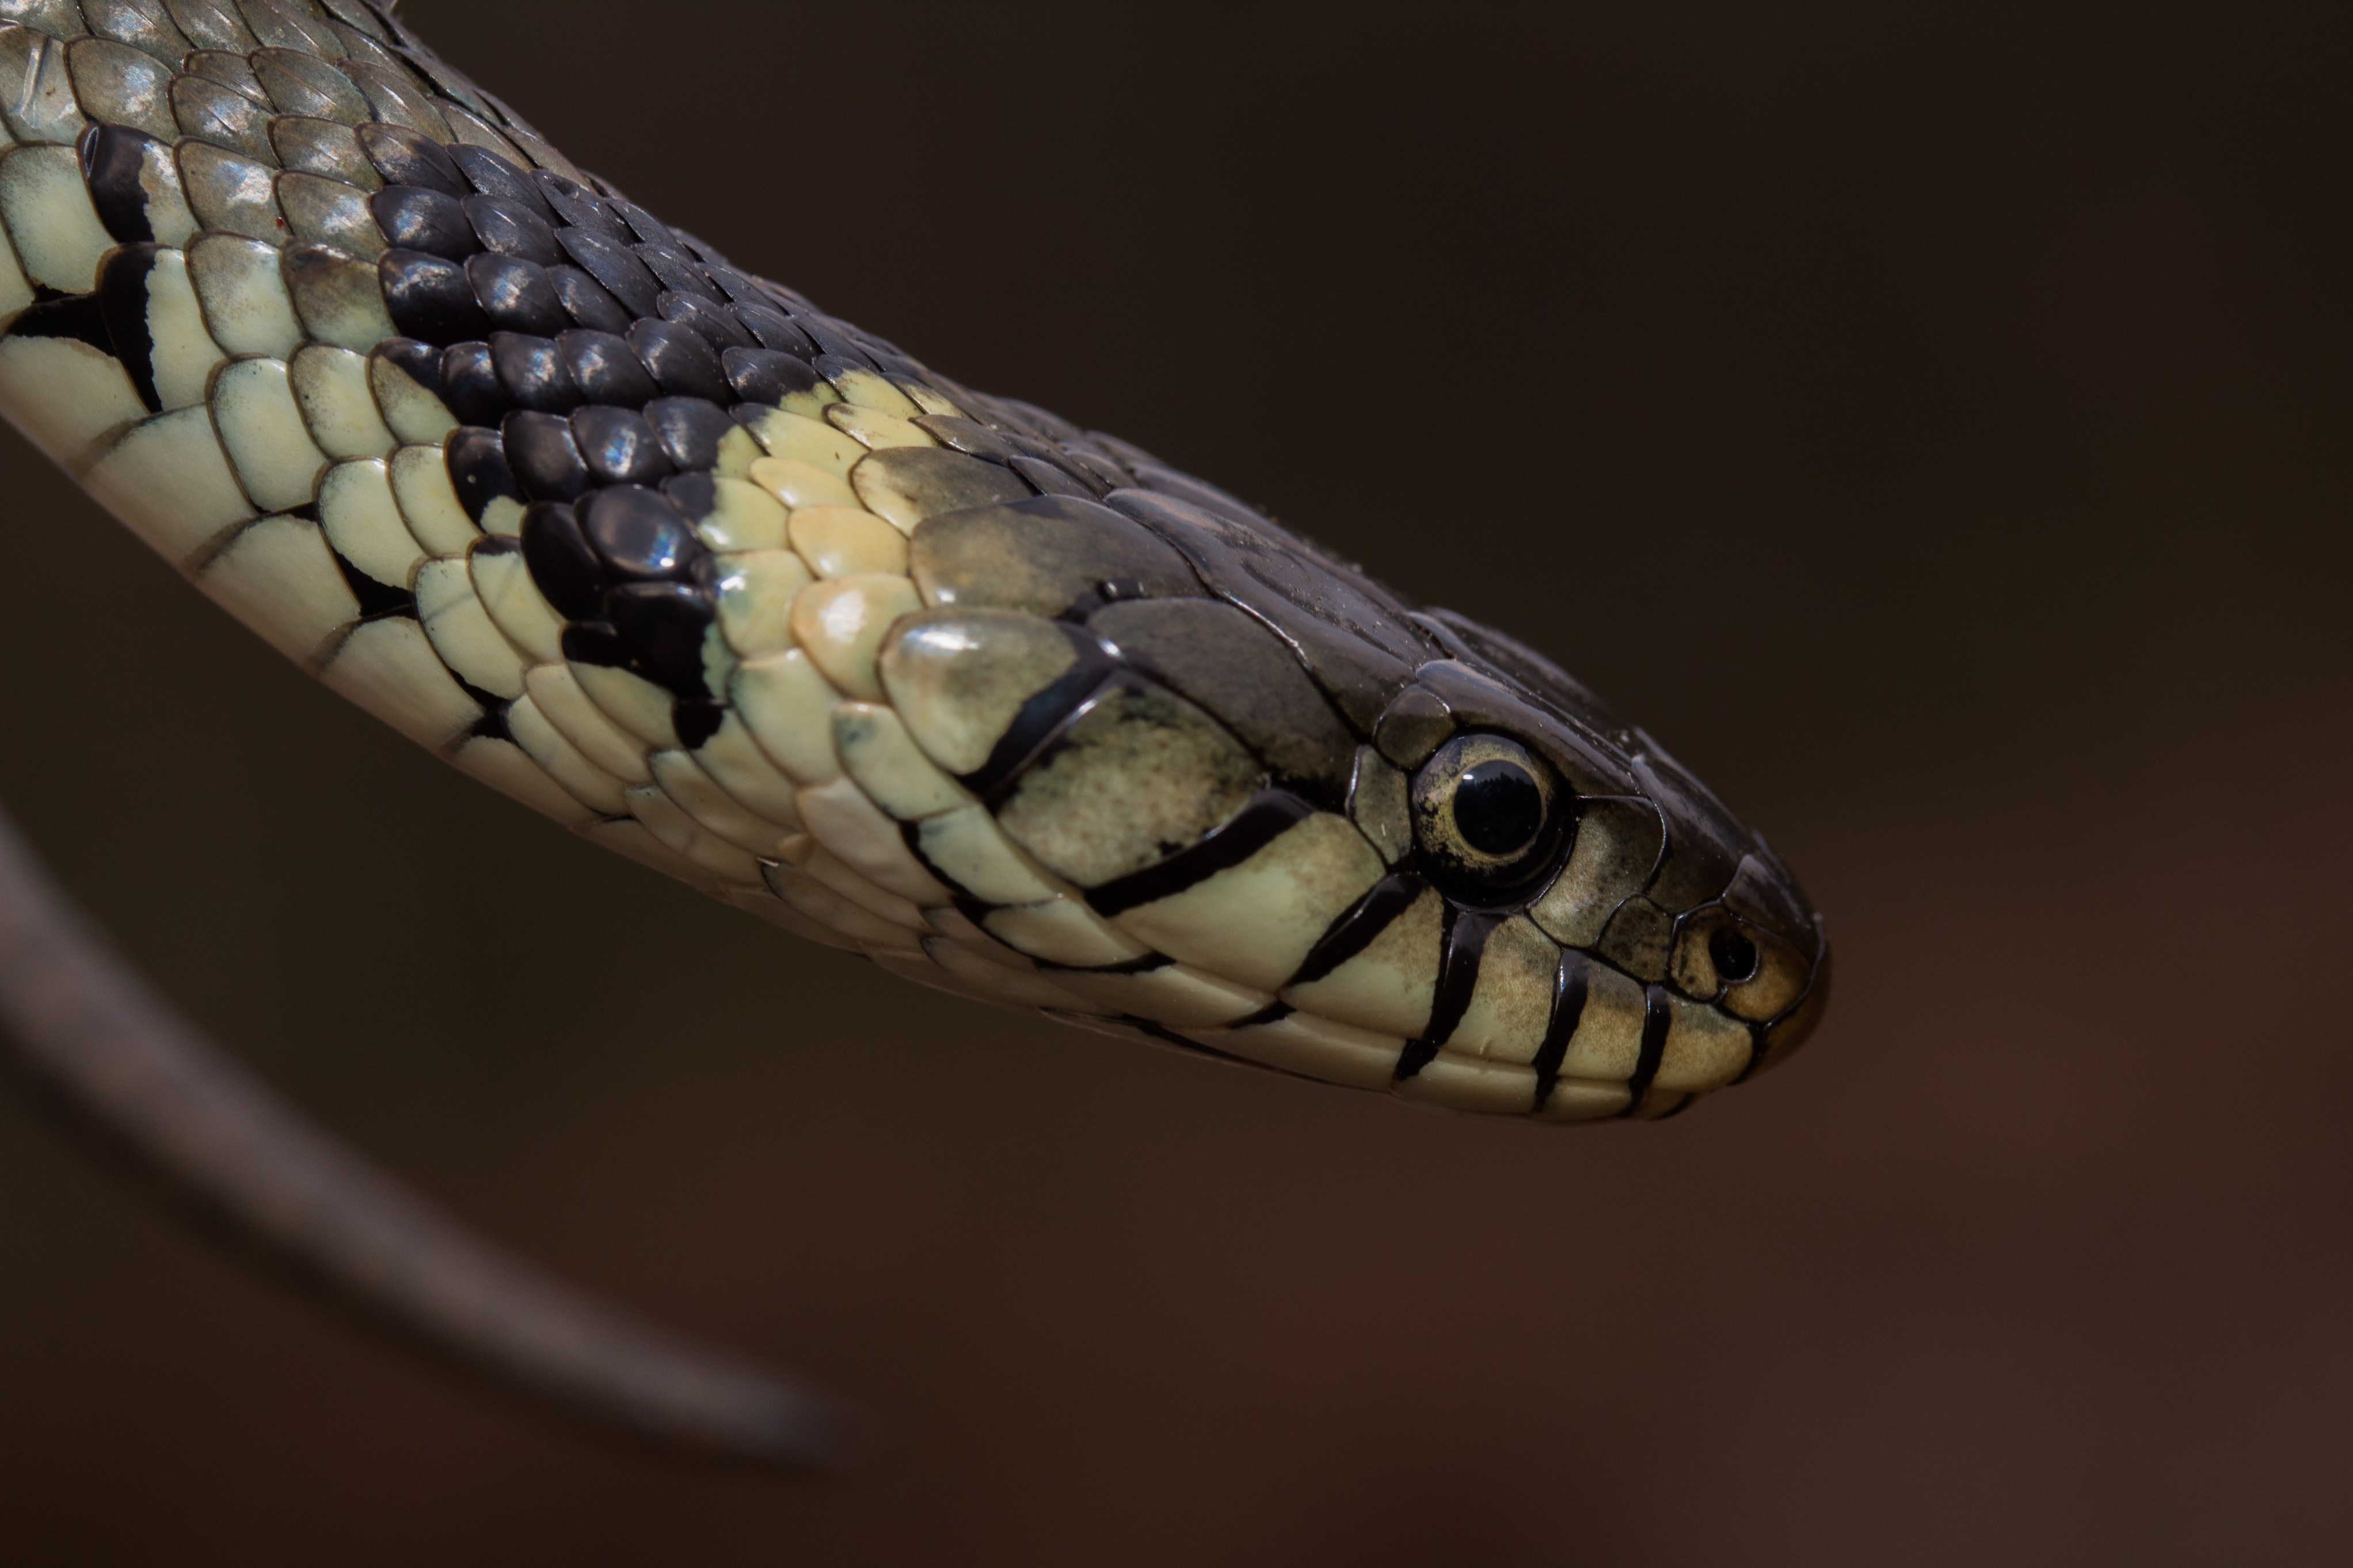 Close up of grass snake (Natrix helvetica)